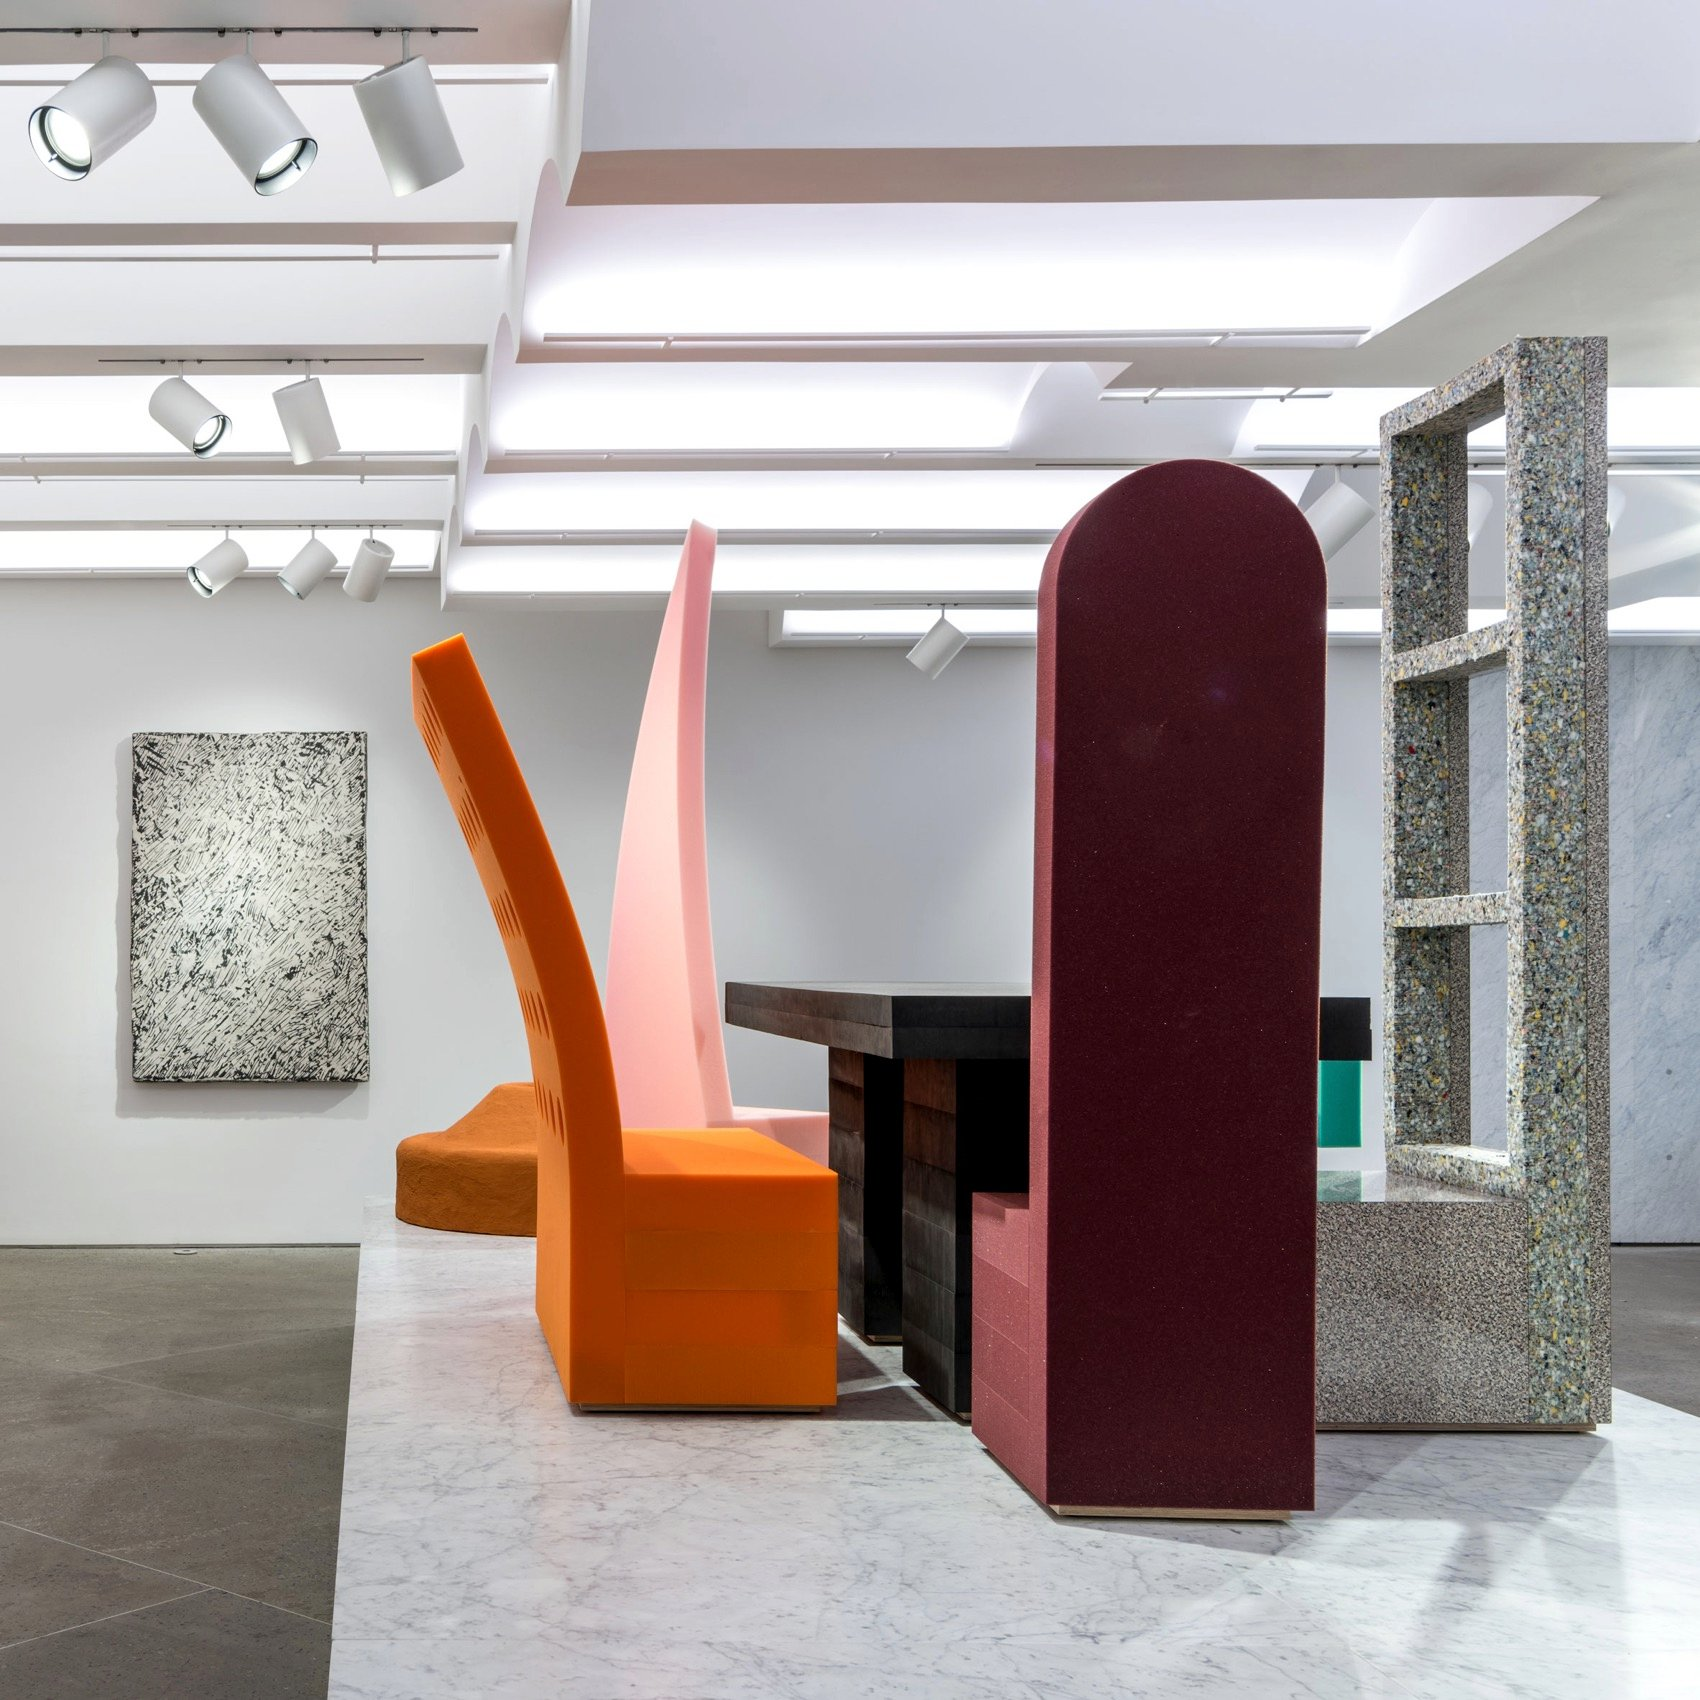 Andy dave fictive kin furniture chamber dezeen